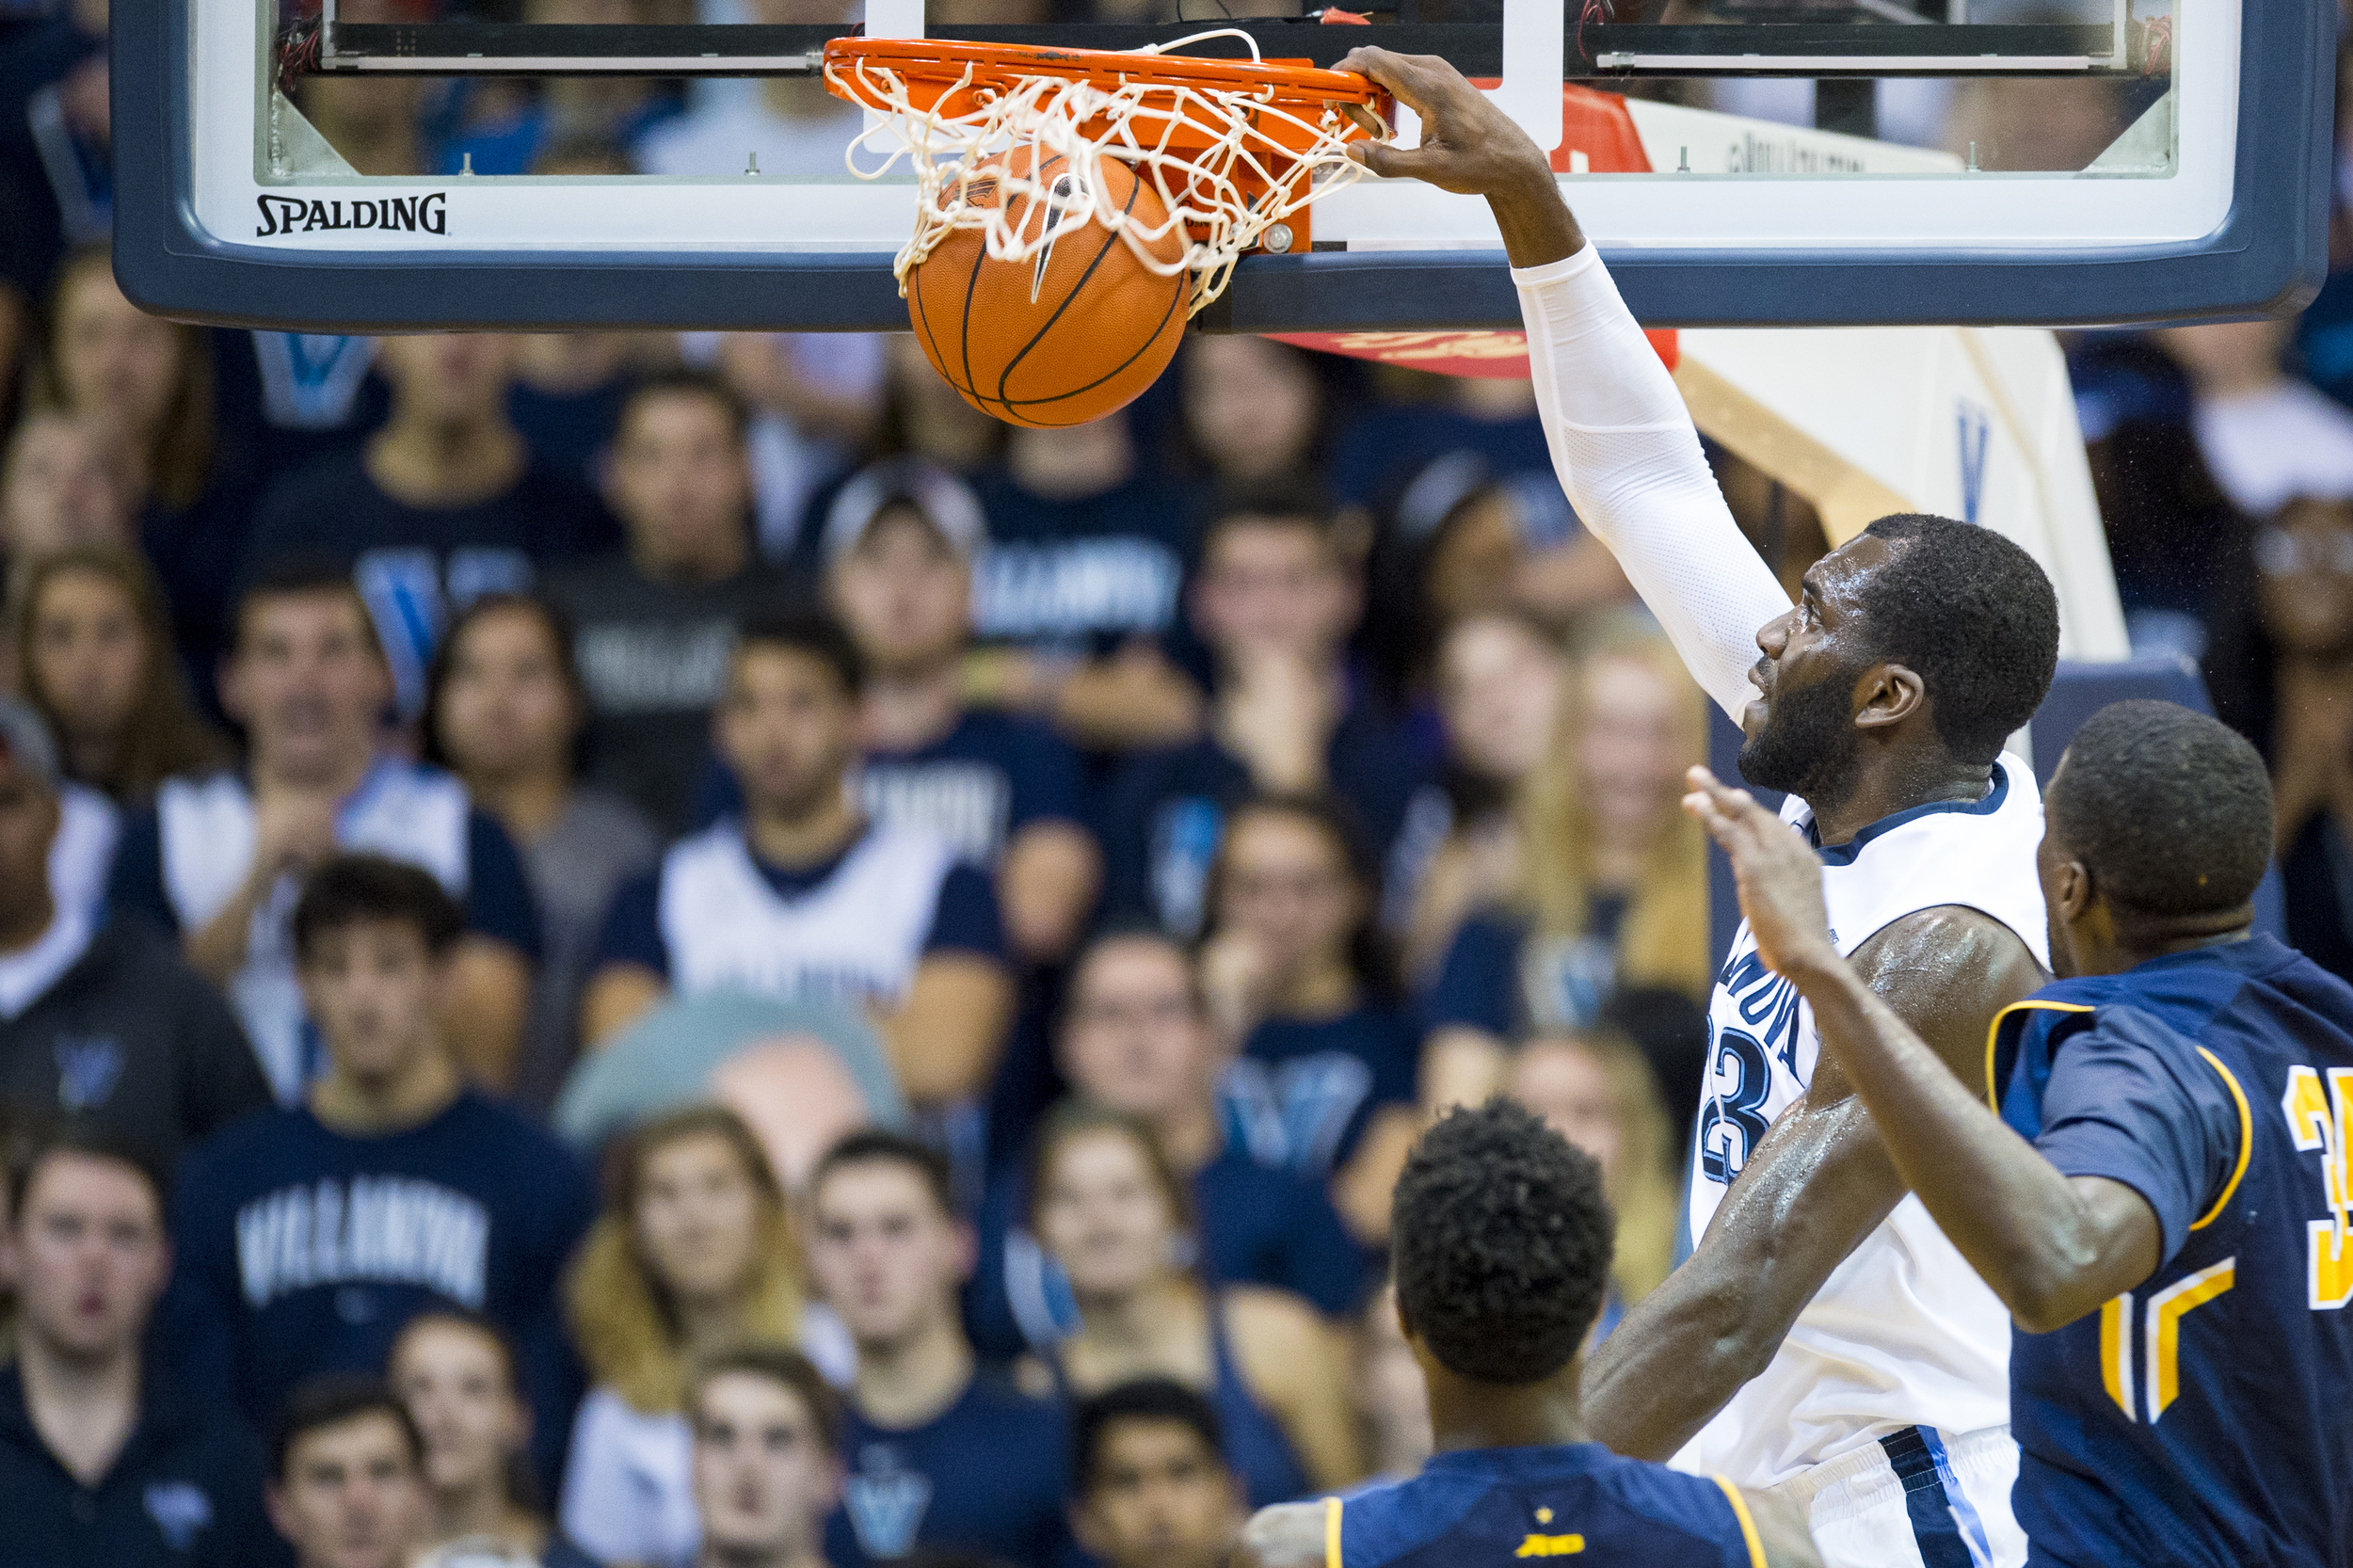 13 December 2015: Villanova Wildcats forward Daniel Ochefu (23) slam dunks the ball during the NCAA basketball game between the La Salle Explorers and the Villanova Wildcats played at the Pavilion in Villanova, PA. (Photo by Gavin Baker/Icon Sportswire)